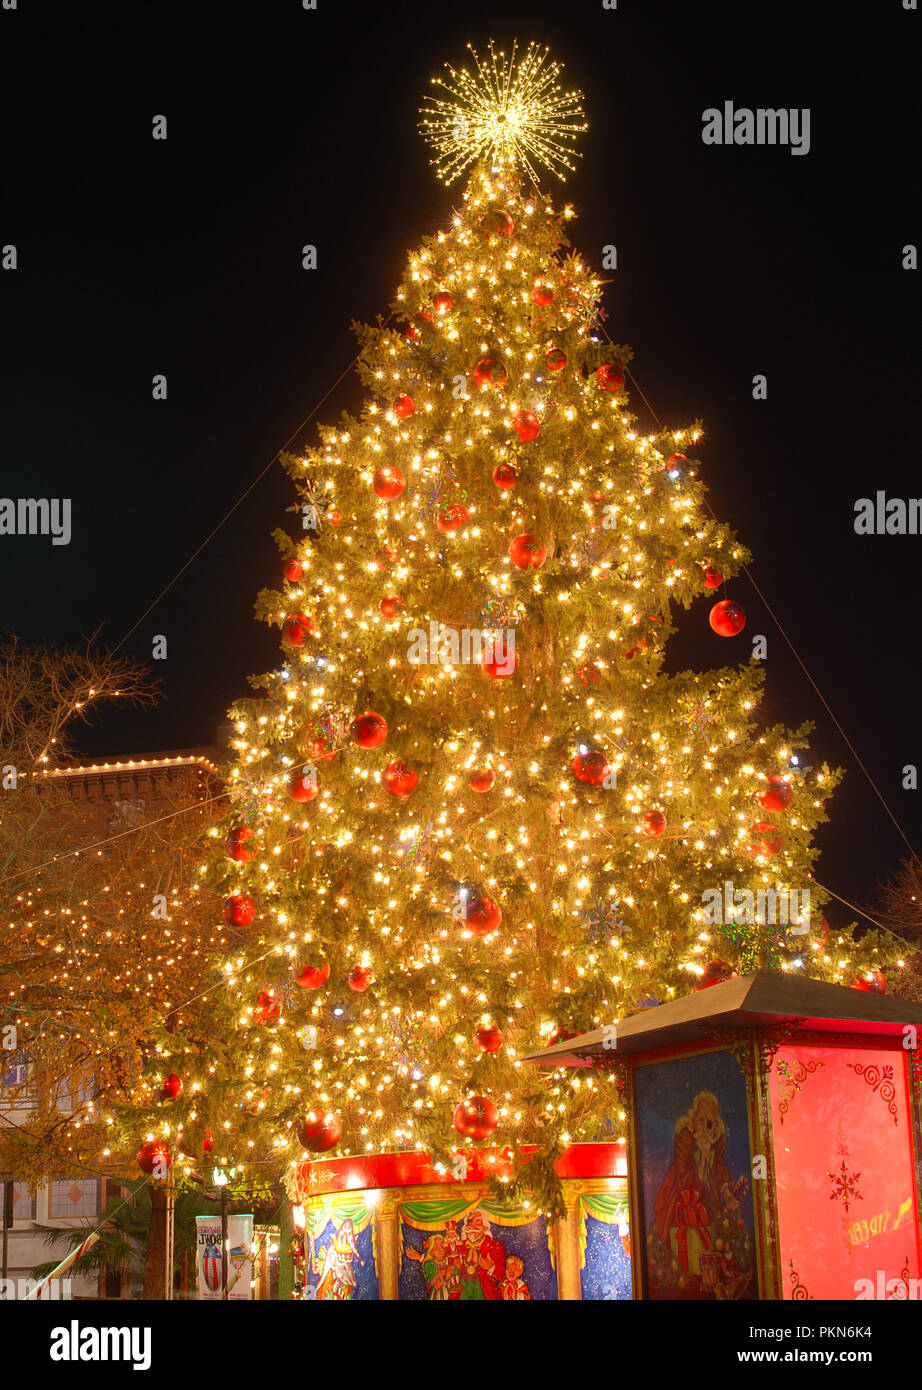 Large Outdoor Christmas Decorations.Large Outdoor Christmas Tree At Night Time Stock Photo